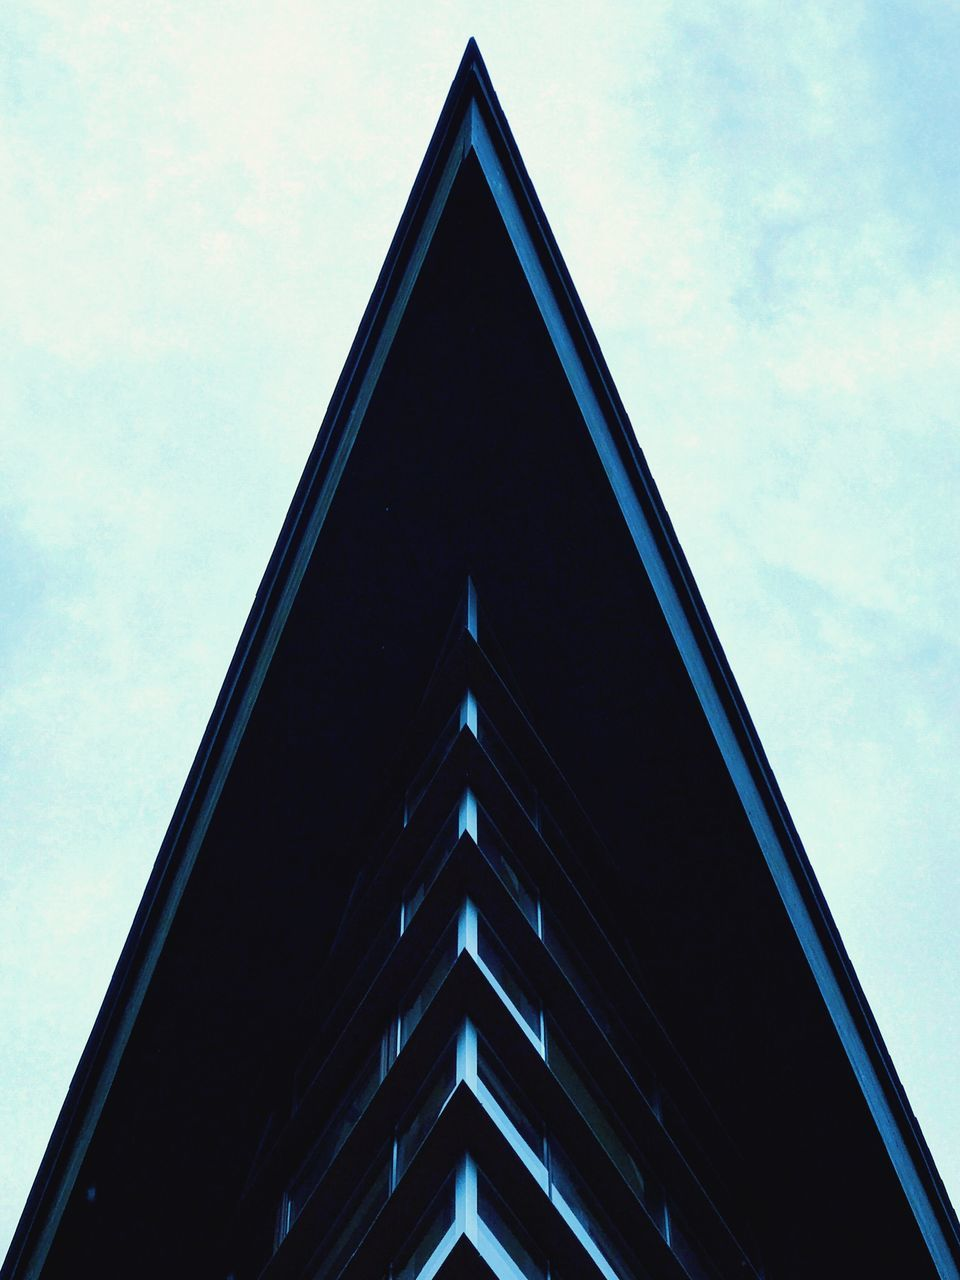 low angle view, architecture, built structure, sky, building exterior, no people, triangle shape, day, outdoors, close-up